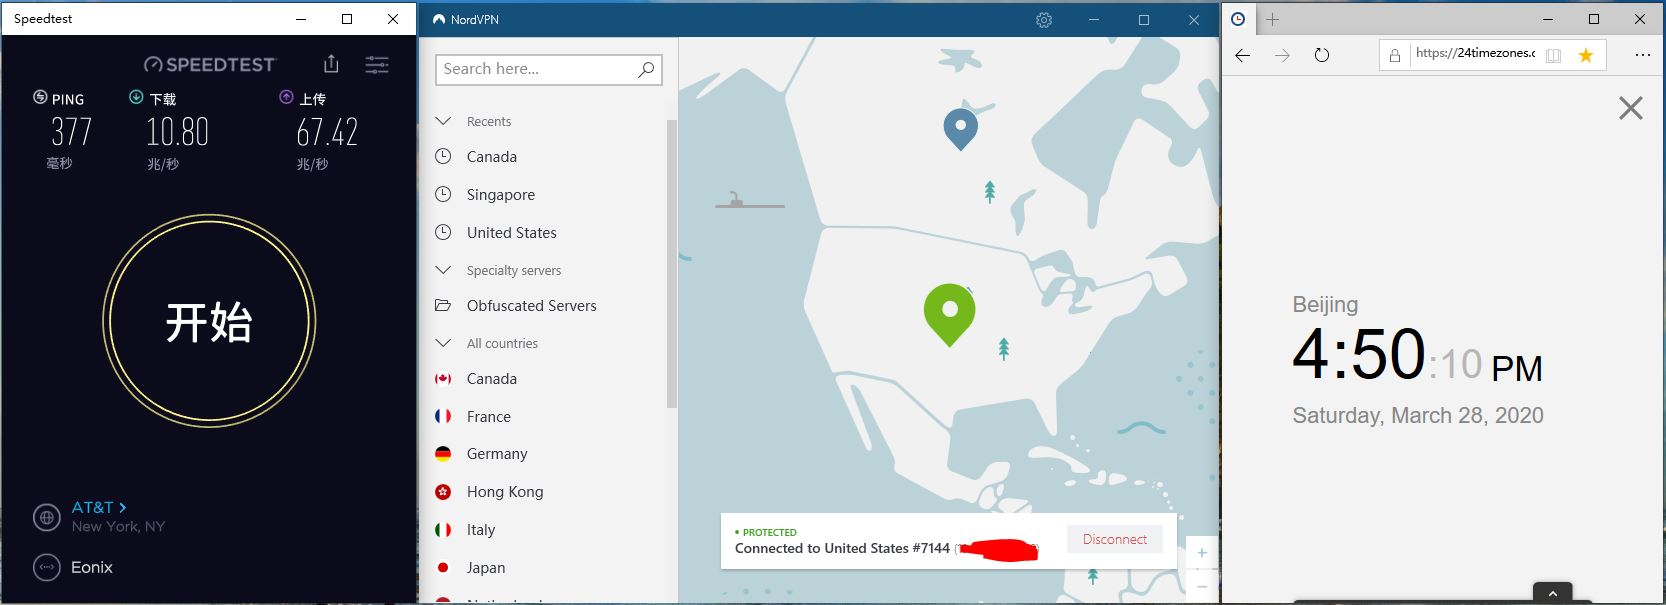 Windows10 NordVPN USA #7144 中国VPN翻墙 科学上网 Speedtest测速 - 20200328